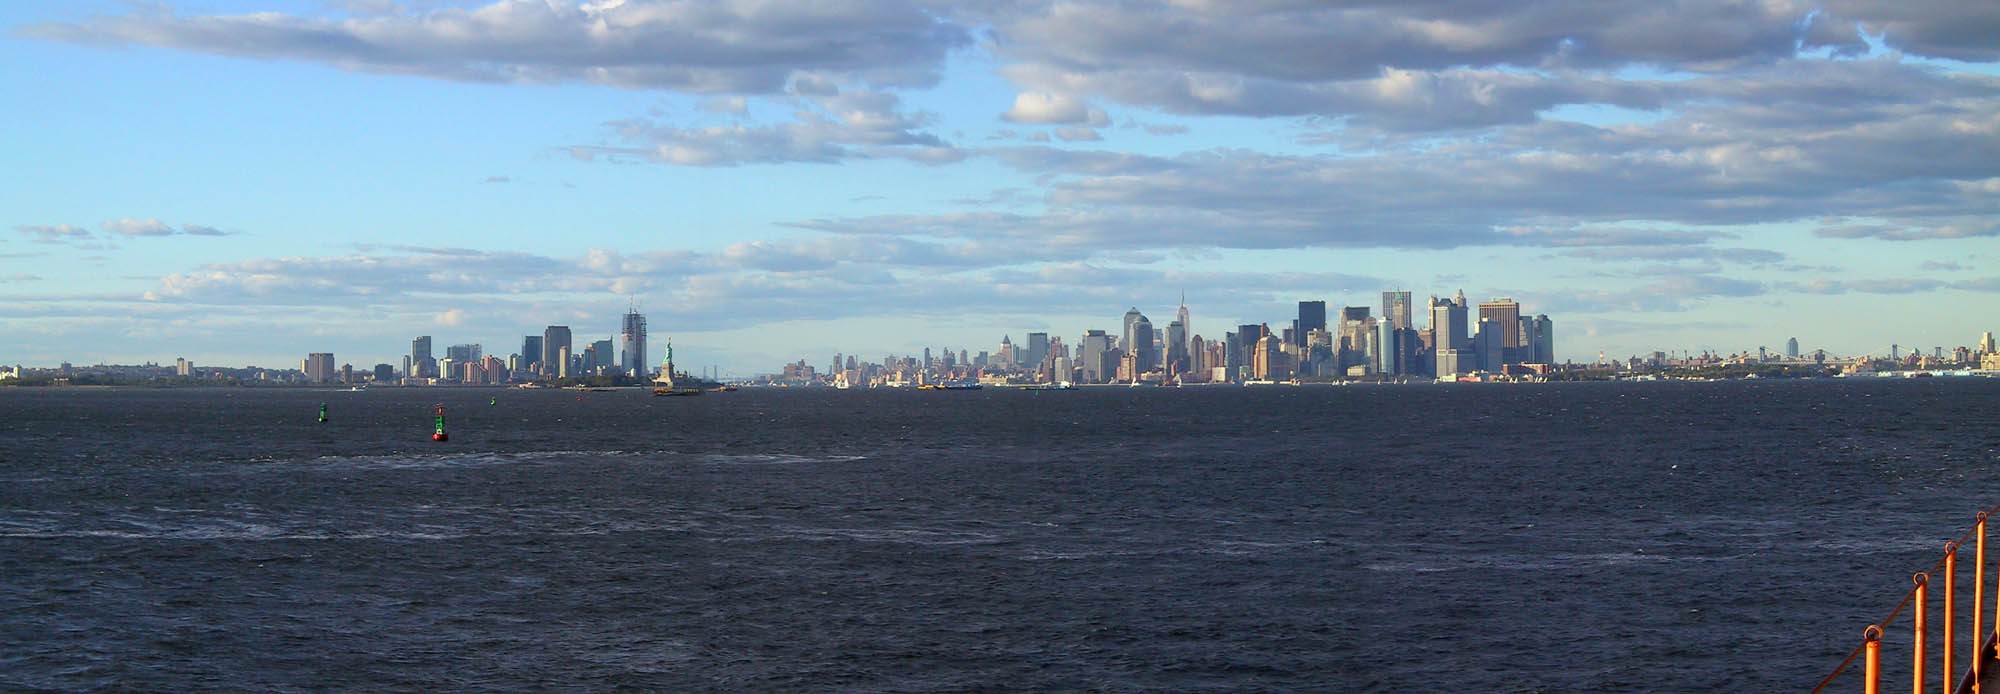 NYC 2002: City Panoramic